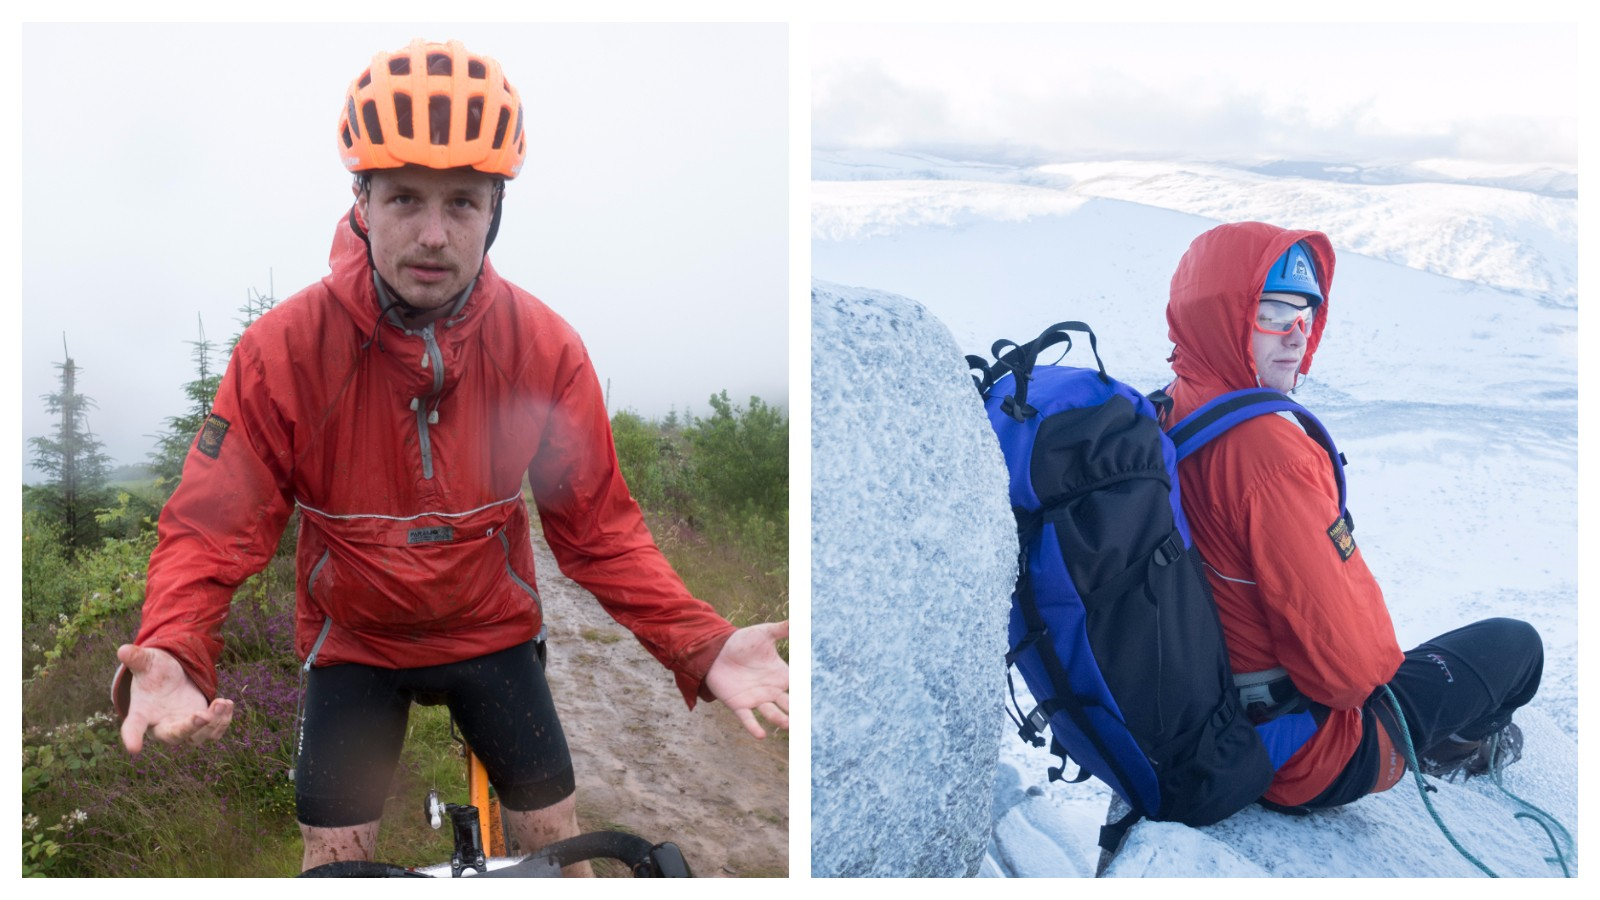 I've even taken the jacket winter mountaineering, though the very, very grimy Grinduro may have been its hardest challenge